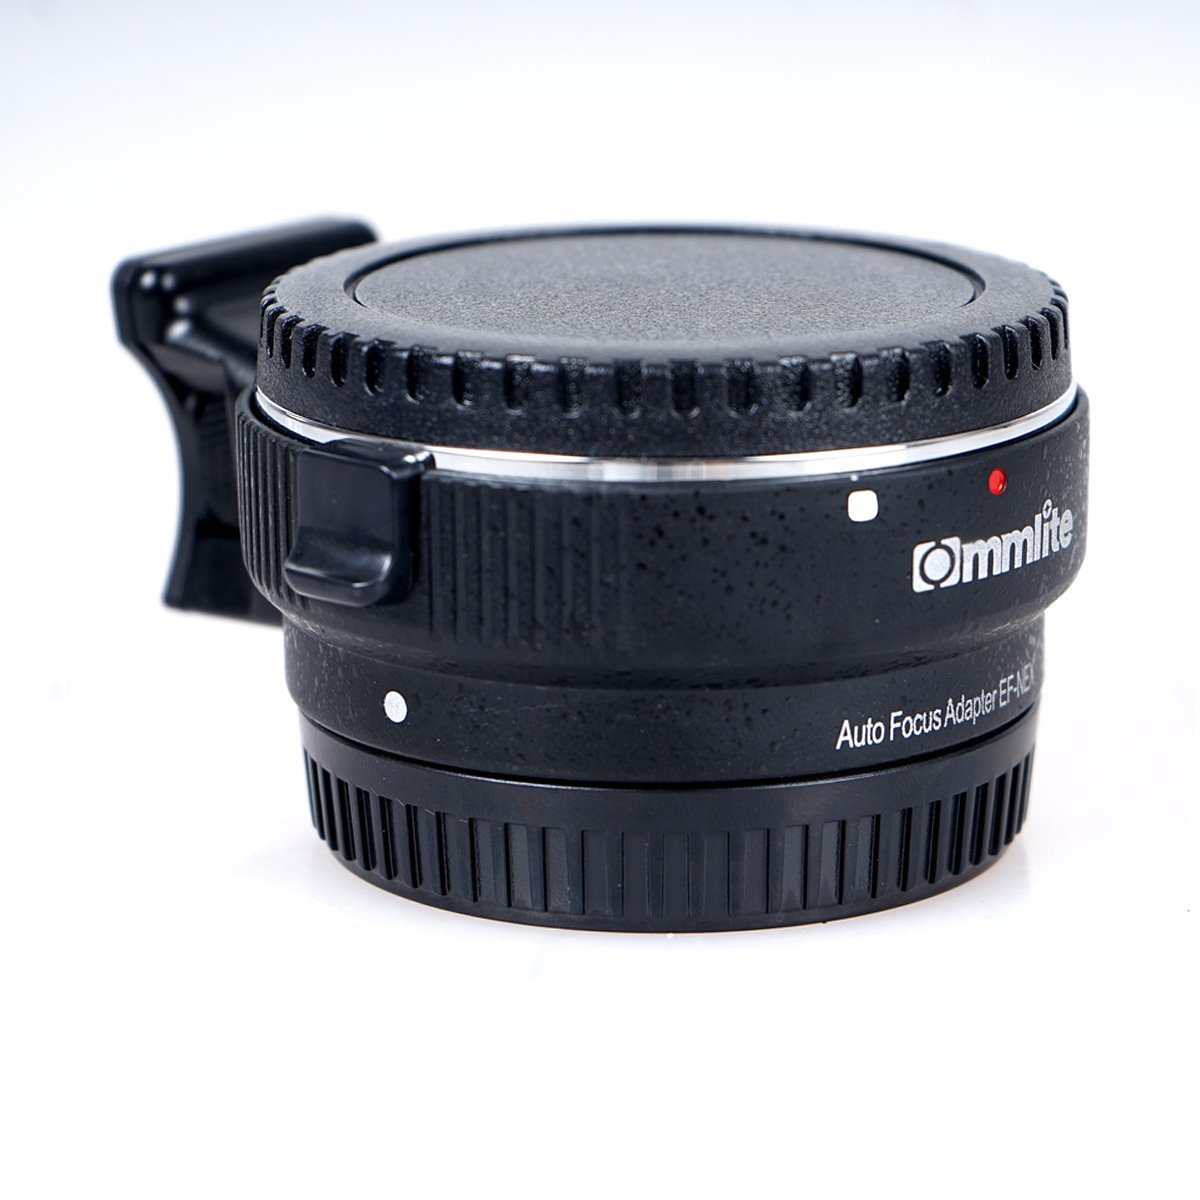 Auto Focus Mount Adapter Ef Nex For Canon To Sony Procore Lens Camera Iv Adapters Photo